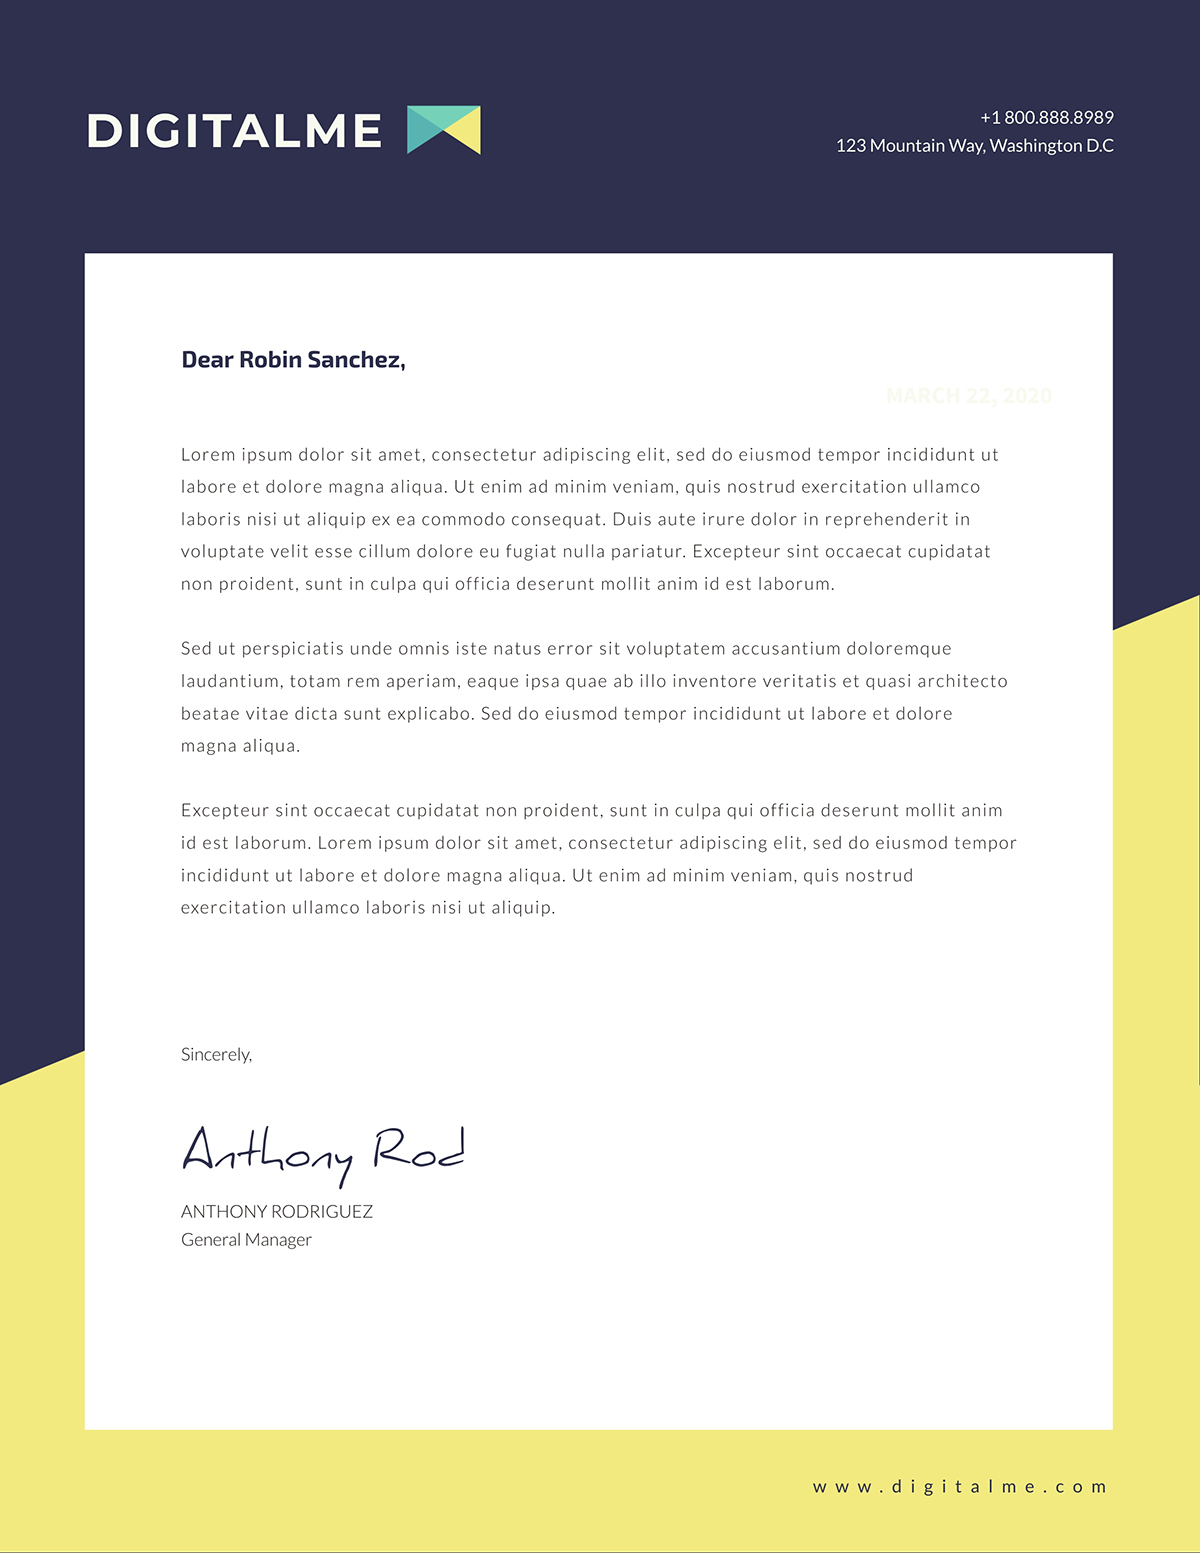 A digital agency letterhead template available to customize in Visme.